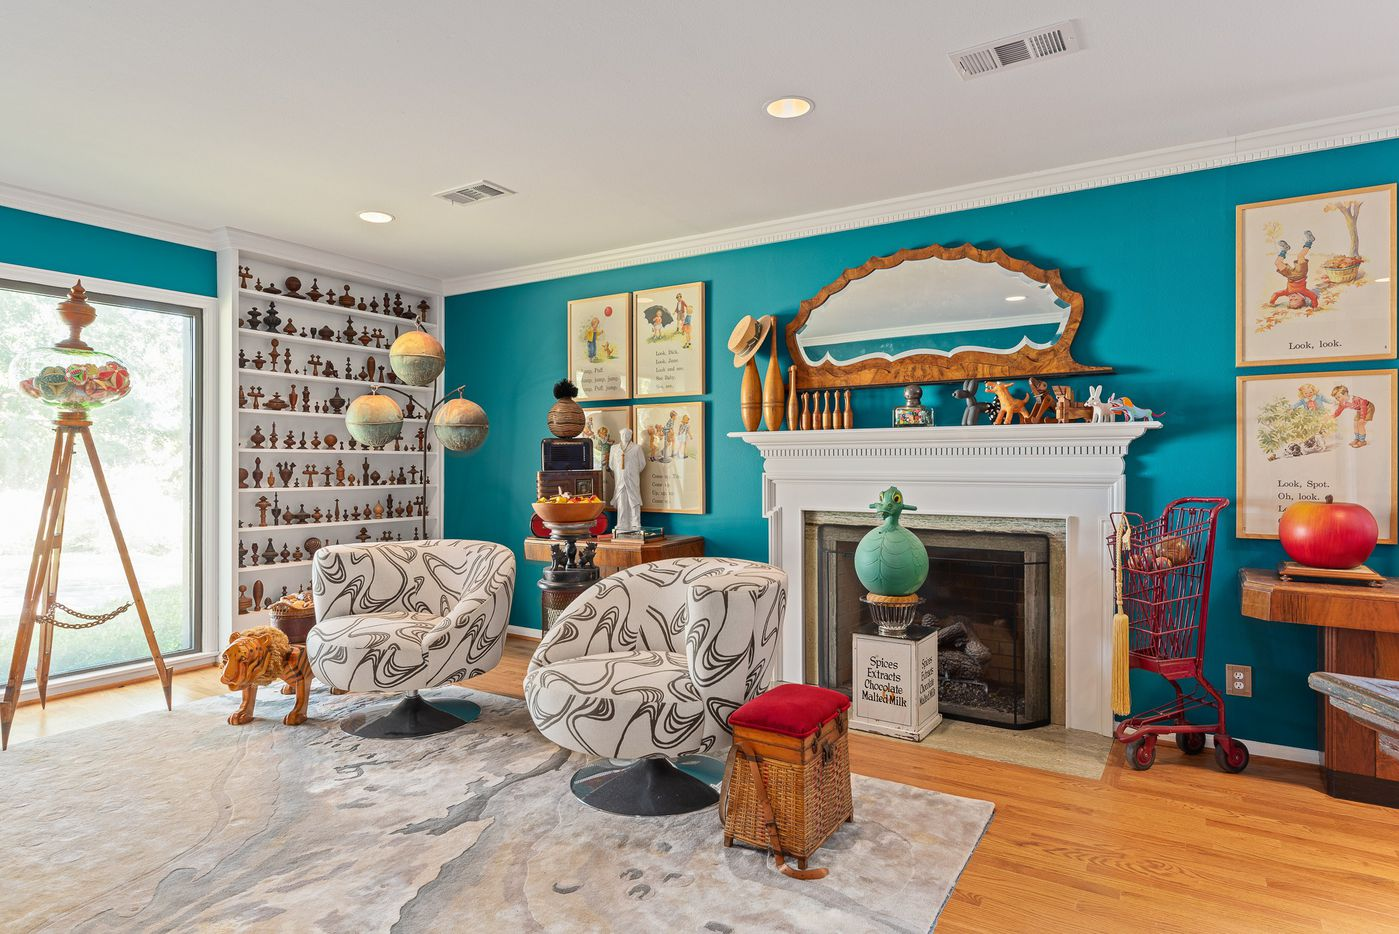 A look at 648 N. Manus Drive in Dallas, one of the houses on the 2019 Heritage Oak Cliff Home Tour.